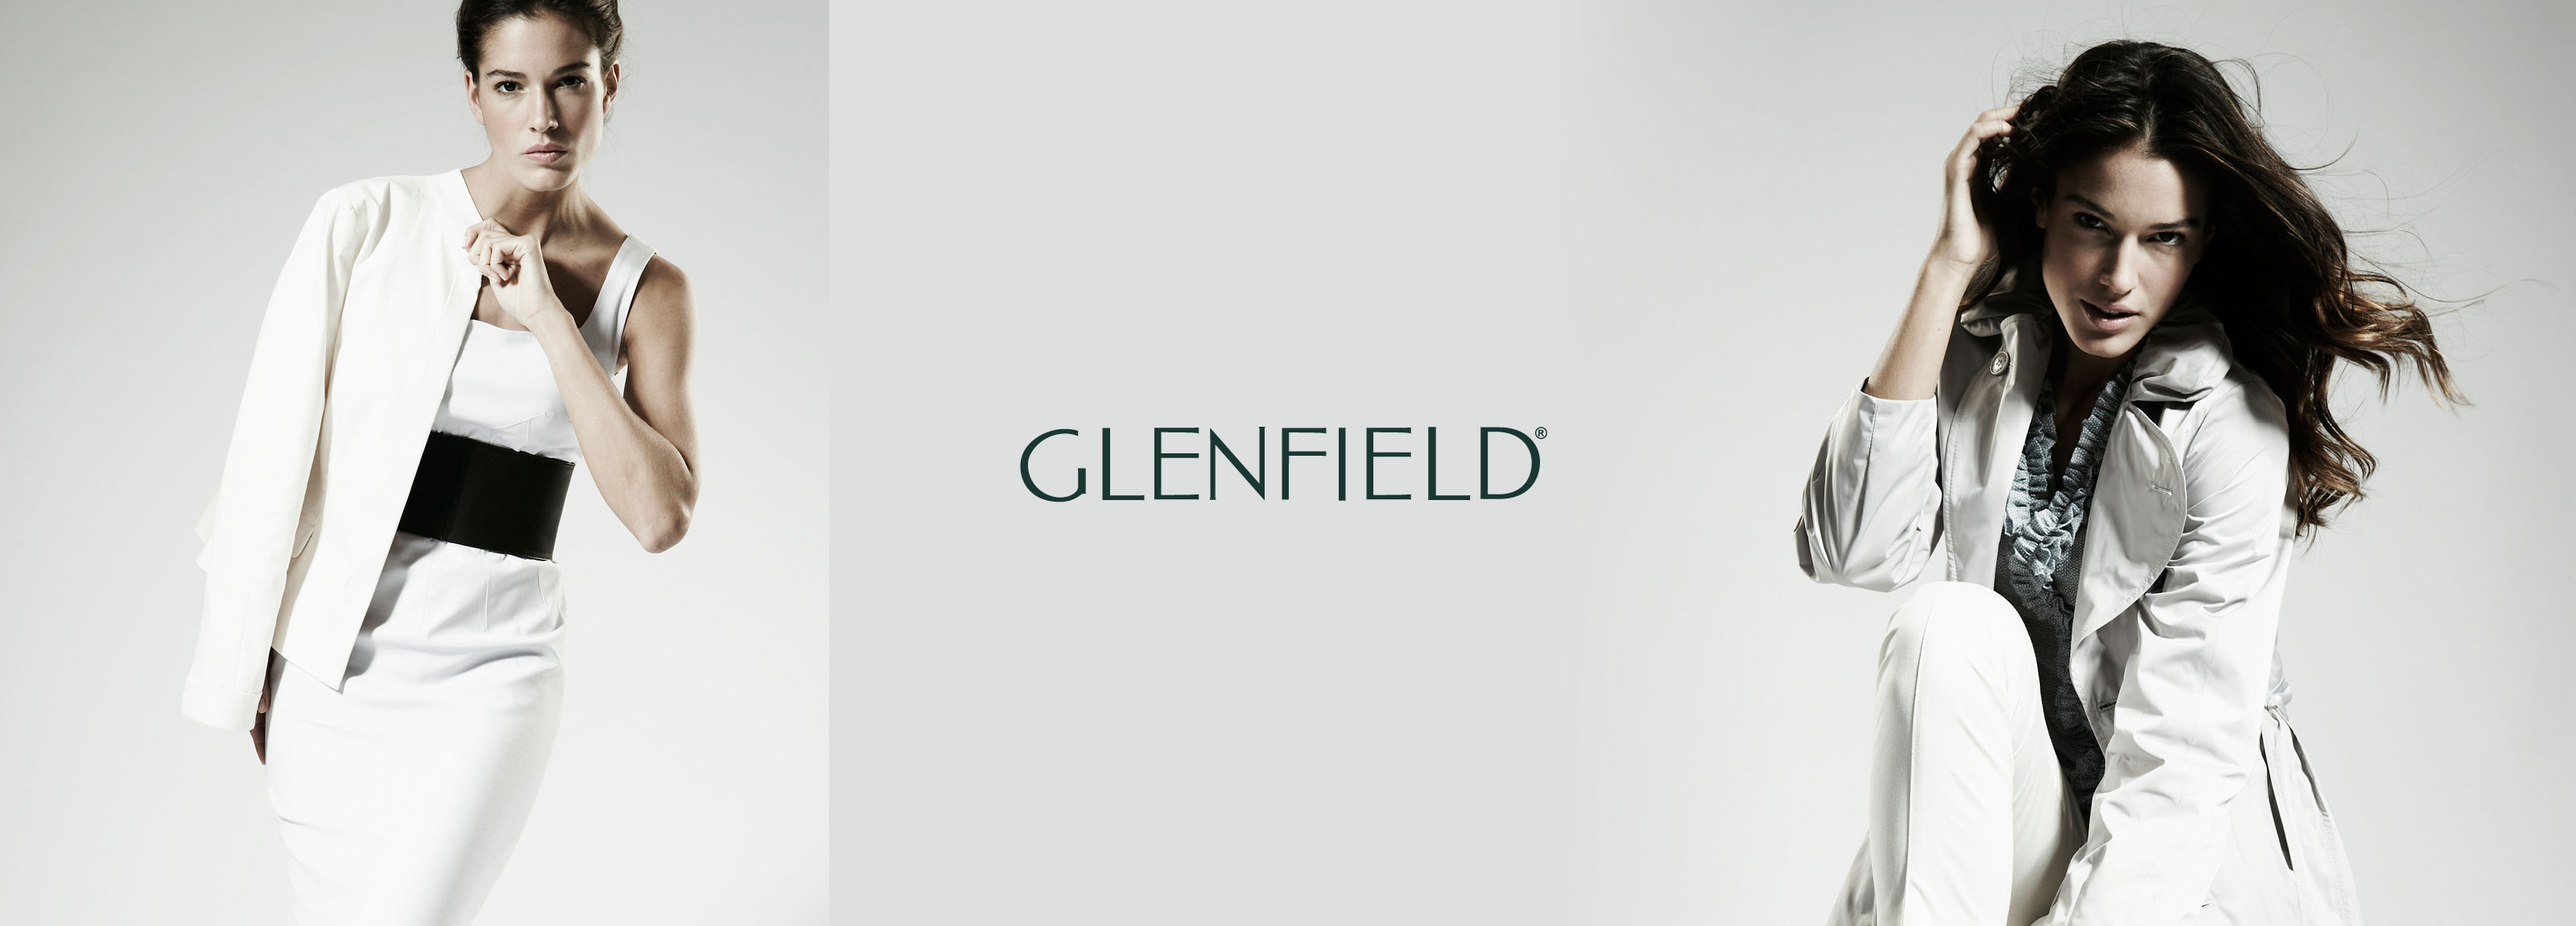 Glenfield - Glenfield<br> A new style of total look wear